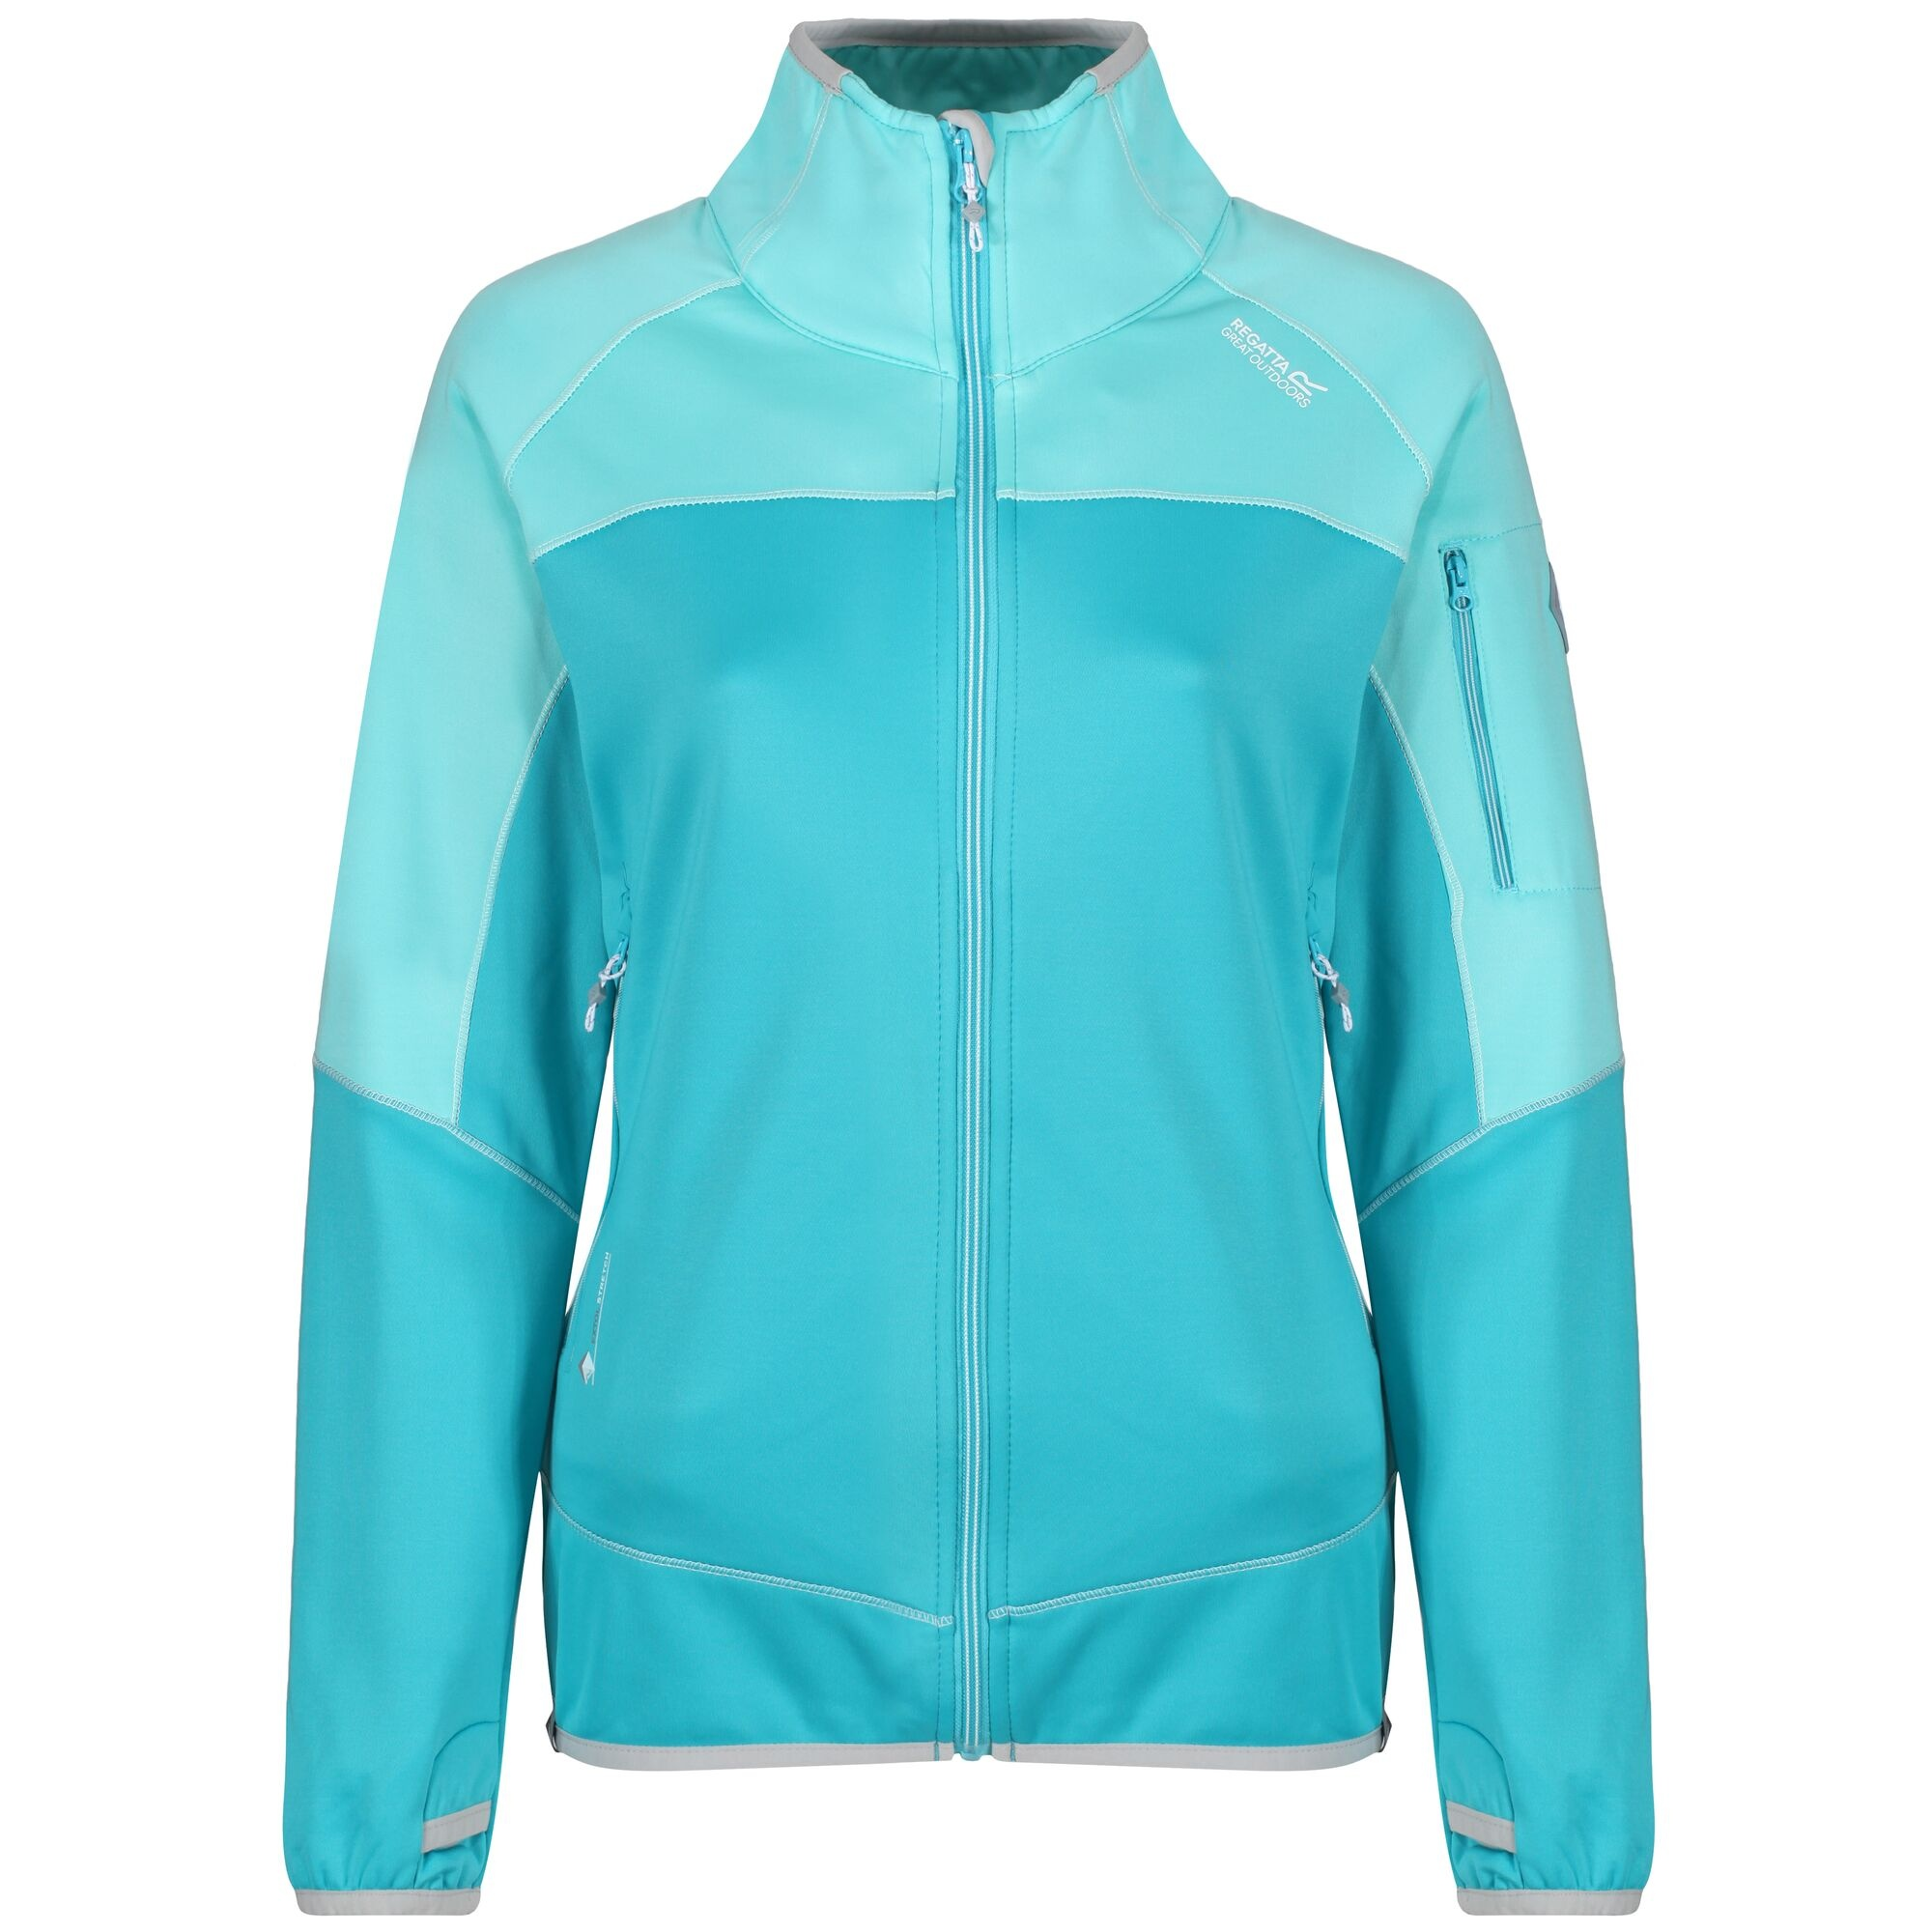 Regatta-Womens-Ladies-Sumatra-III-Softshell-Jacket-RG3314